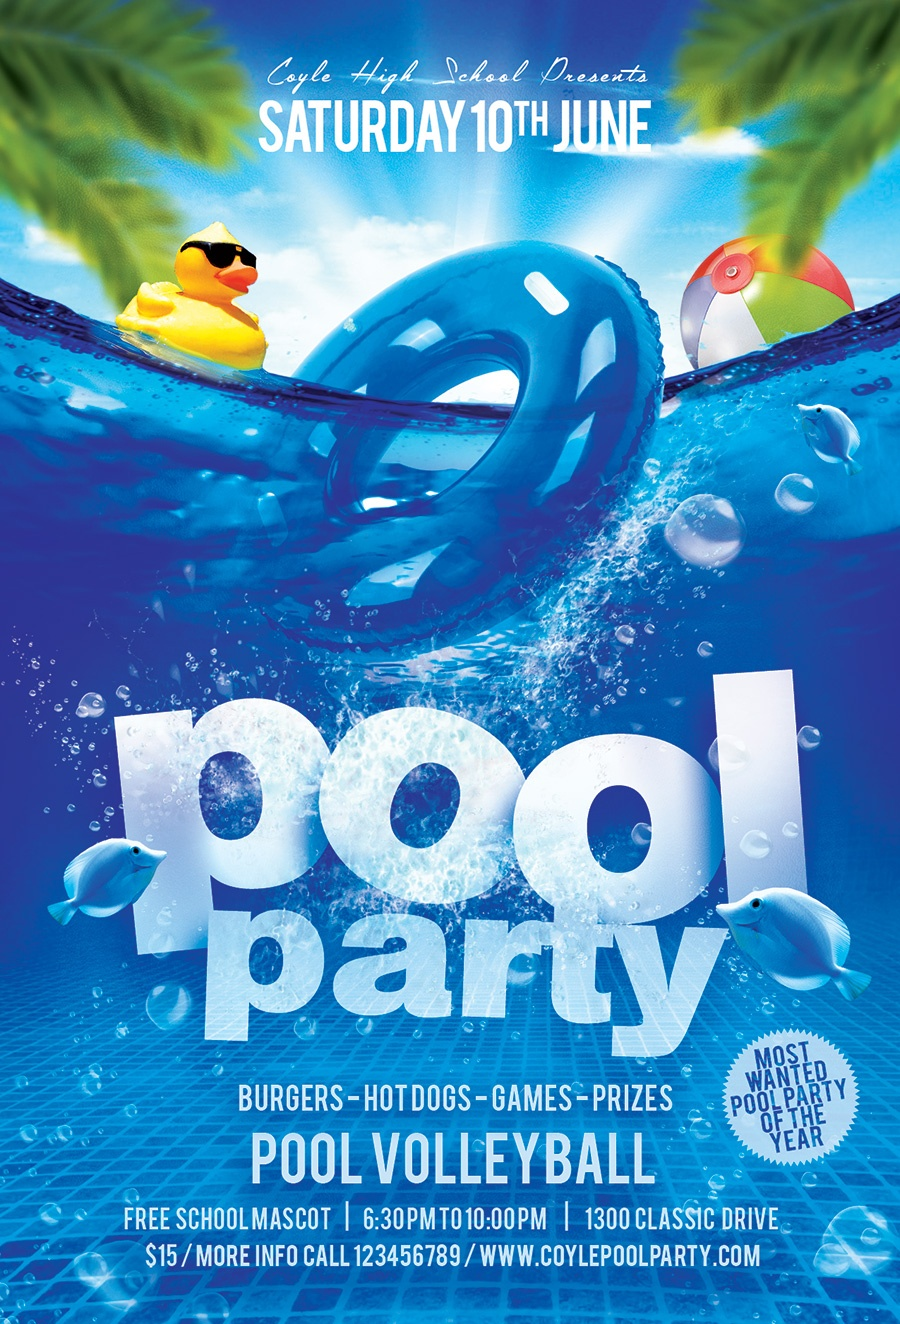 A K-12 Mascots Pool Party - Pool Party Flyers Free Printable